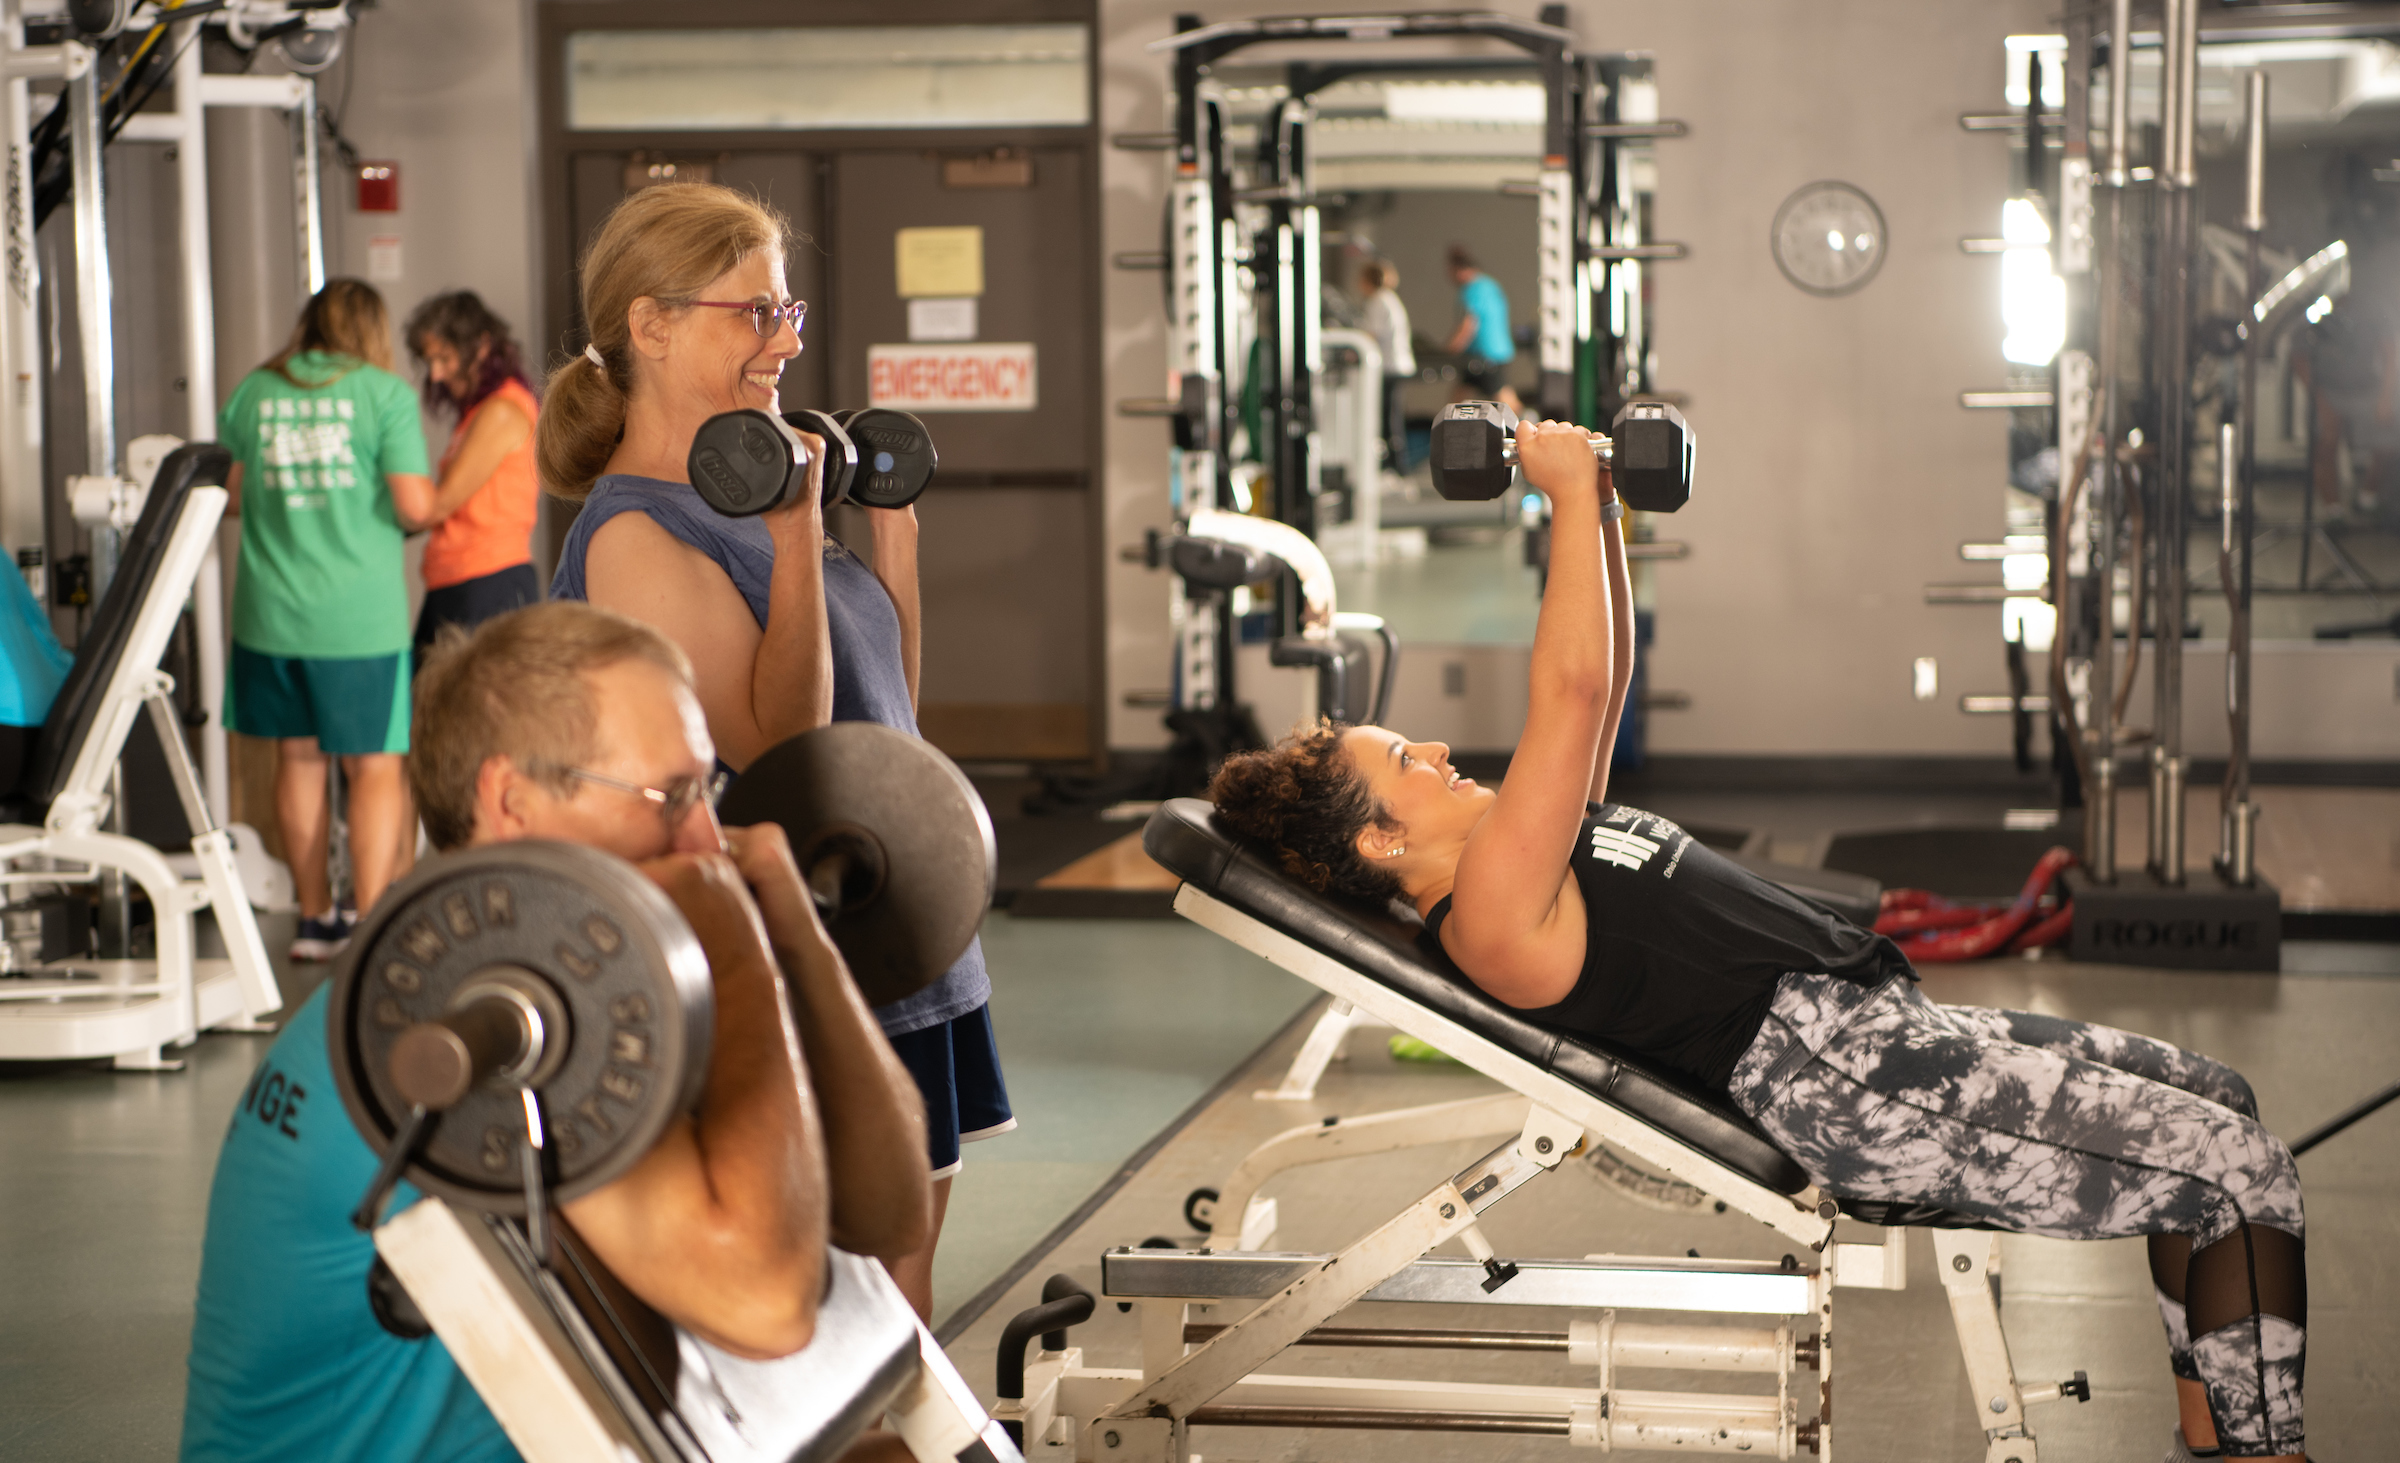 Publicity shot from inside WellWorks gym